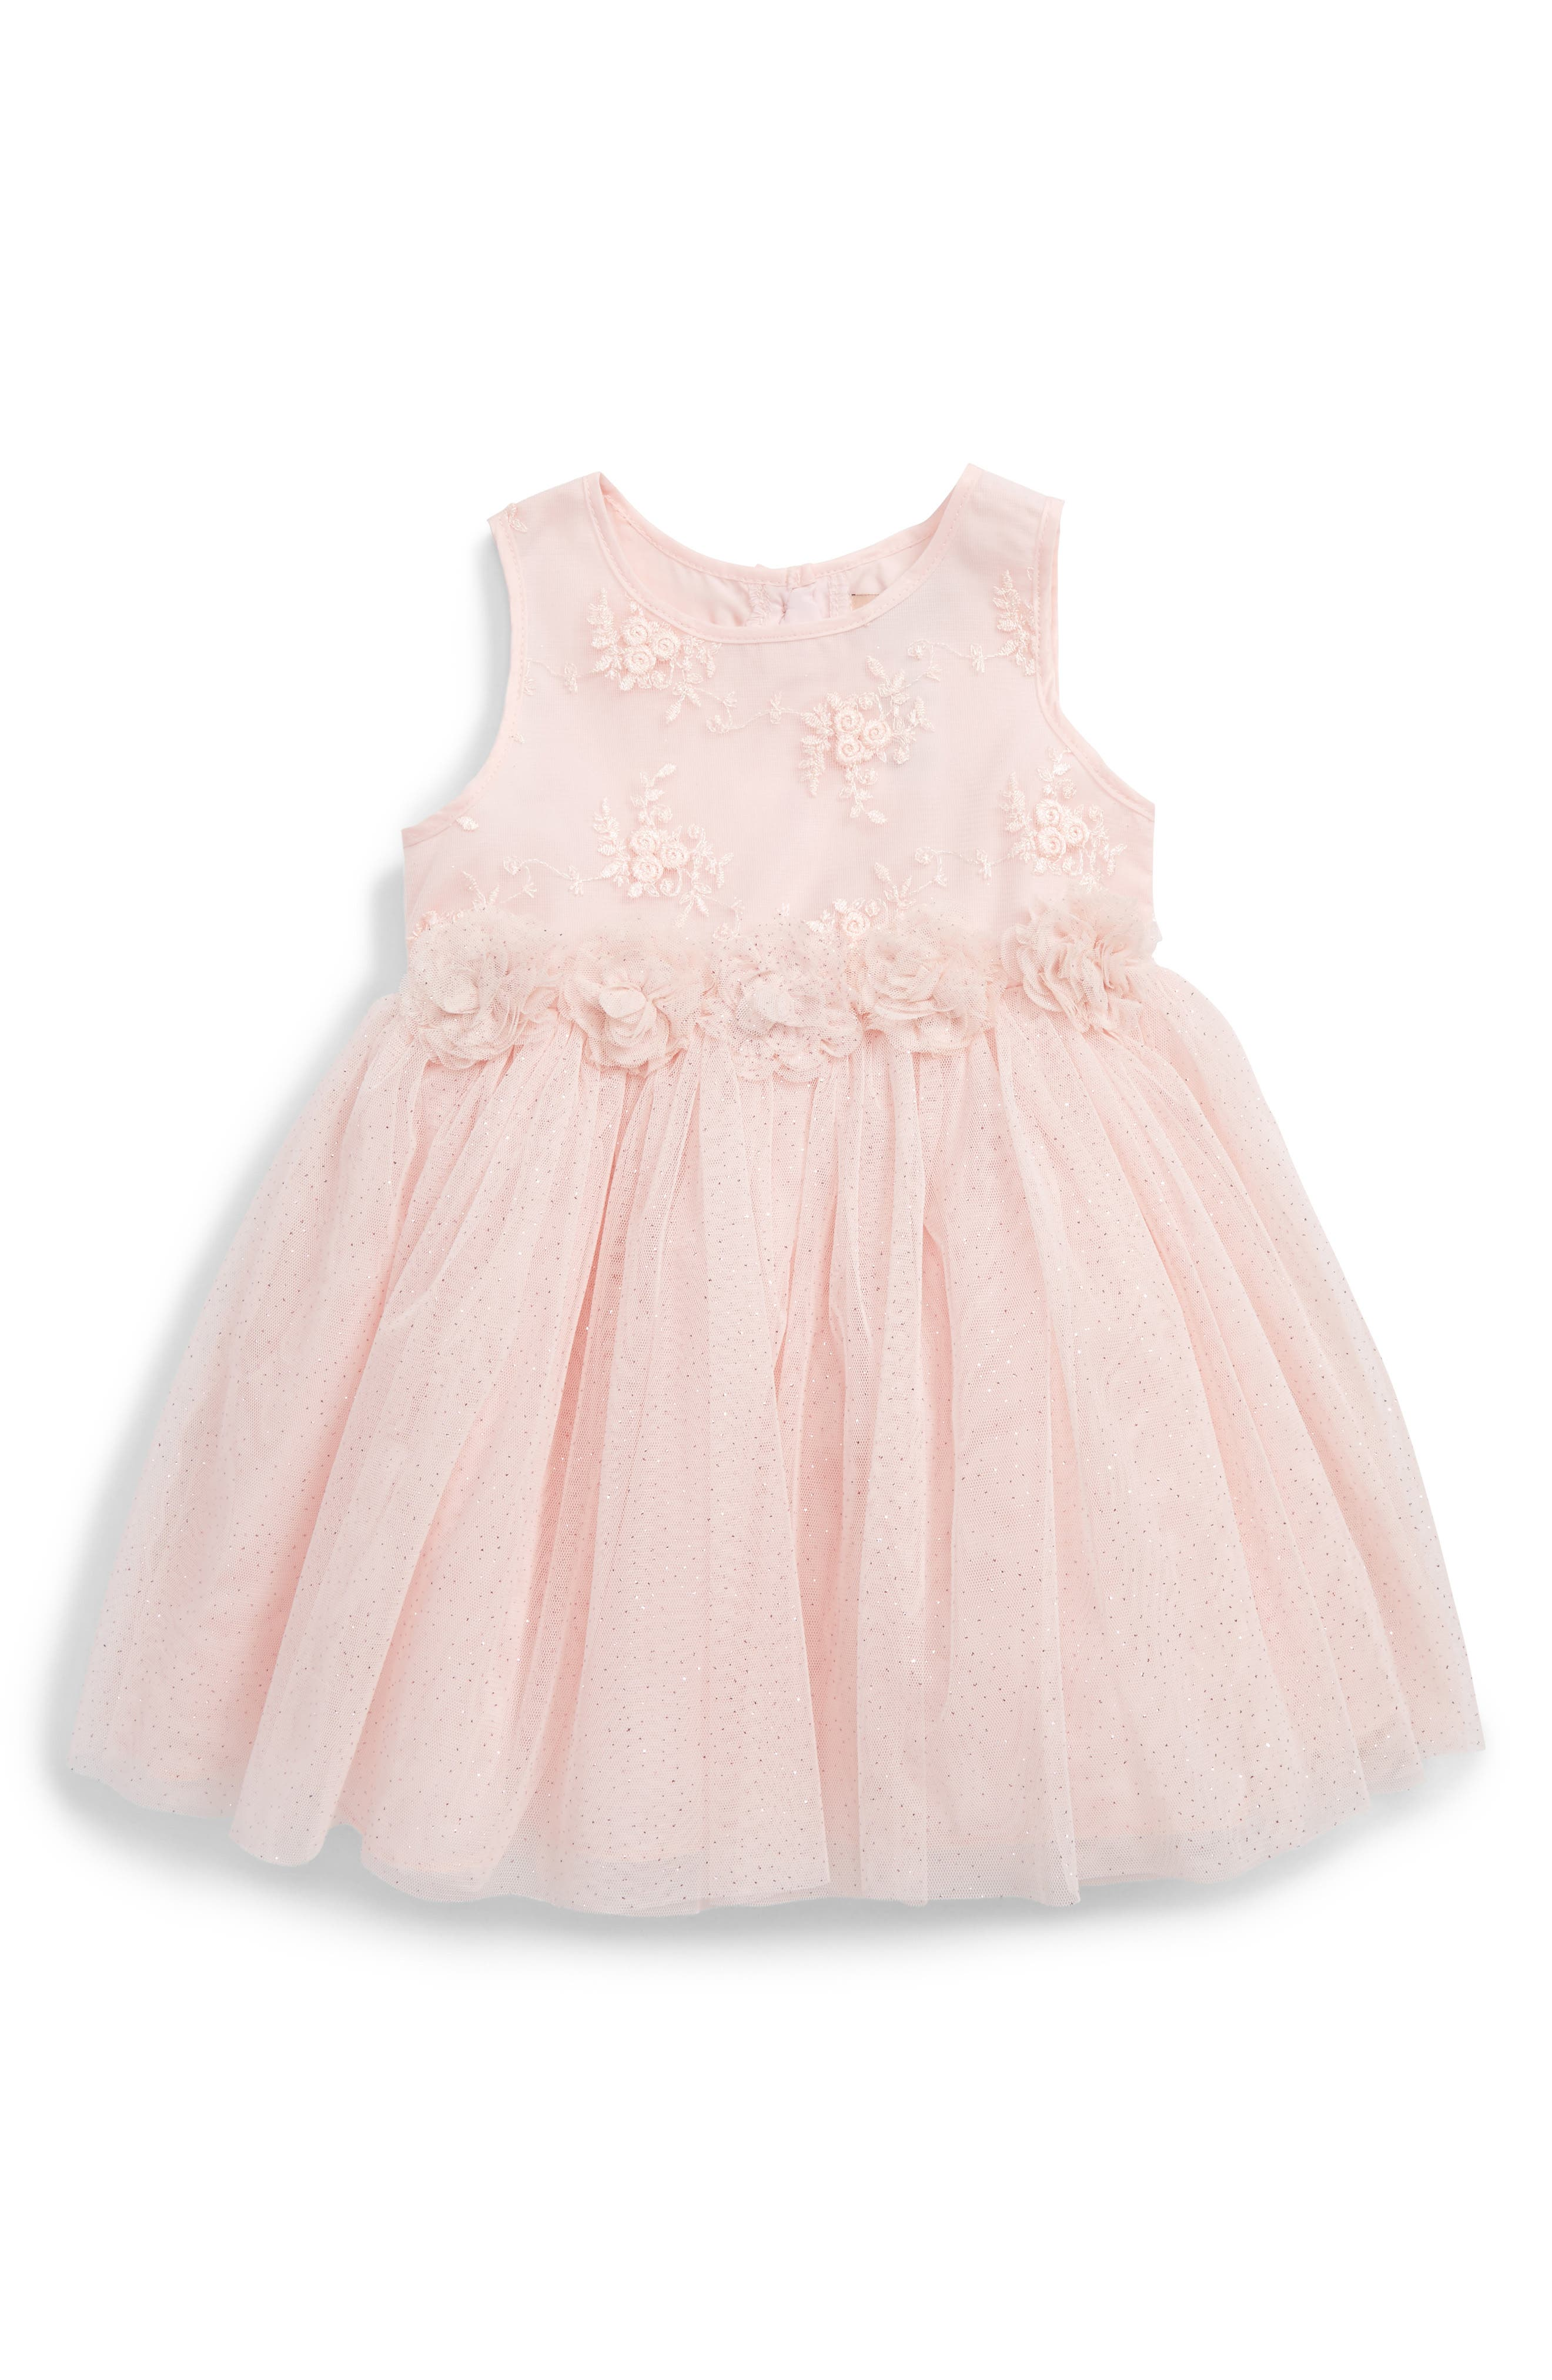 Embroidered Tulle Dress,                             Main thumbnail 1, color,                             Pink